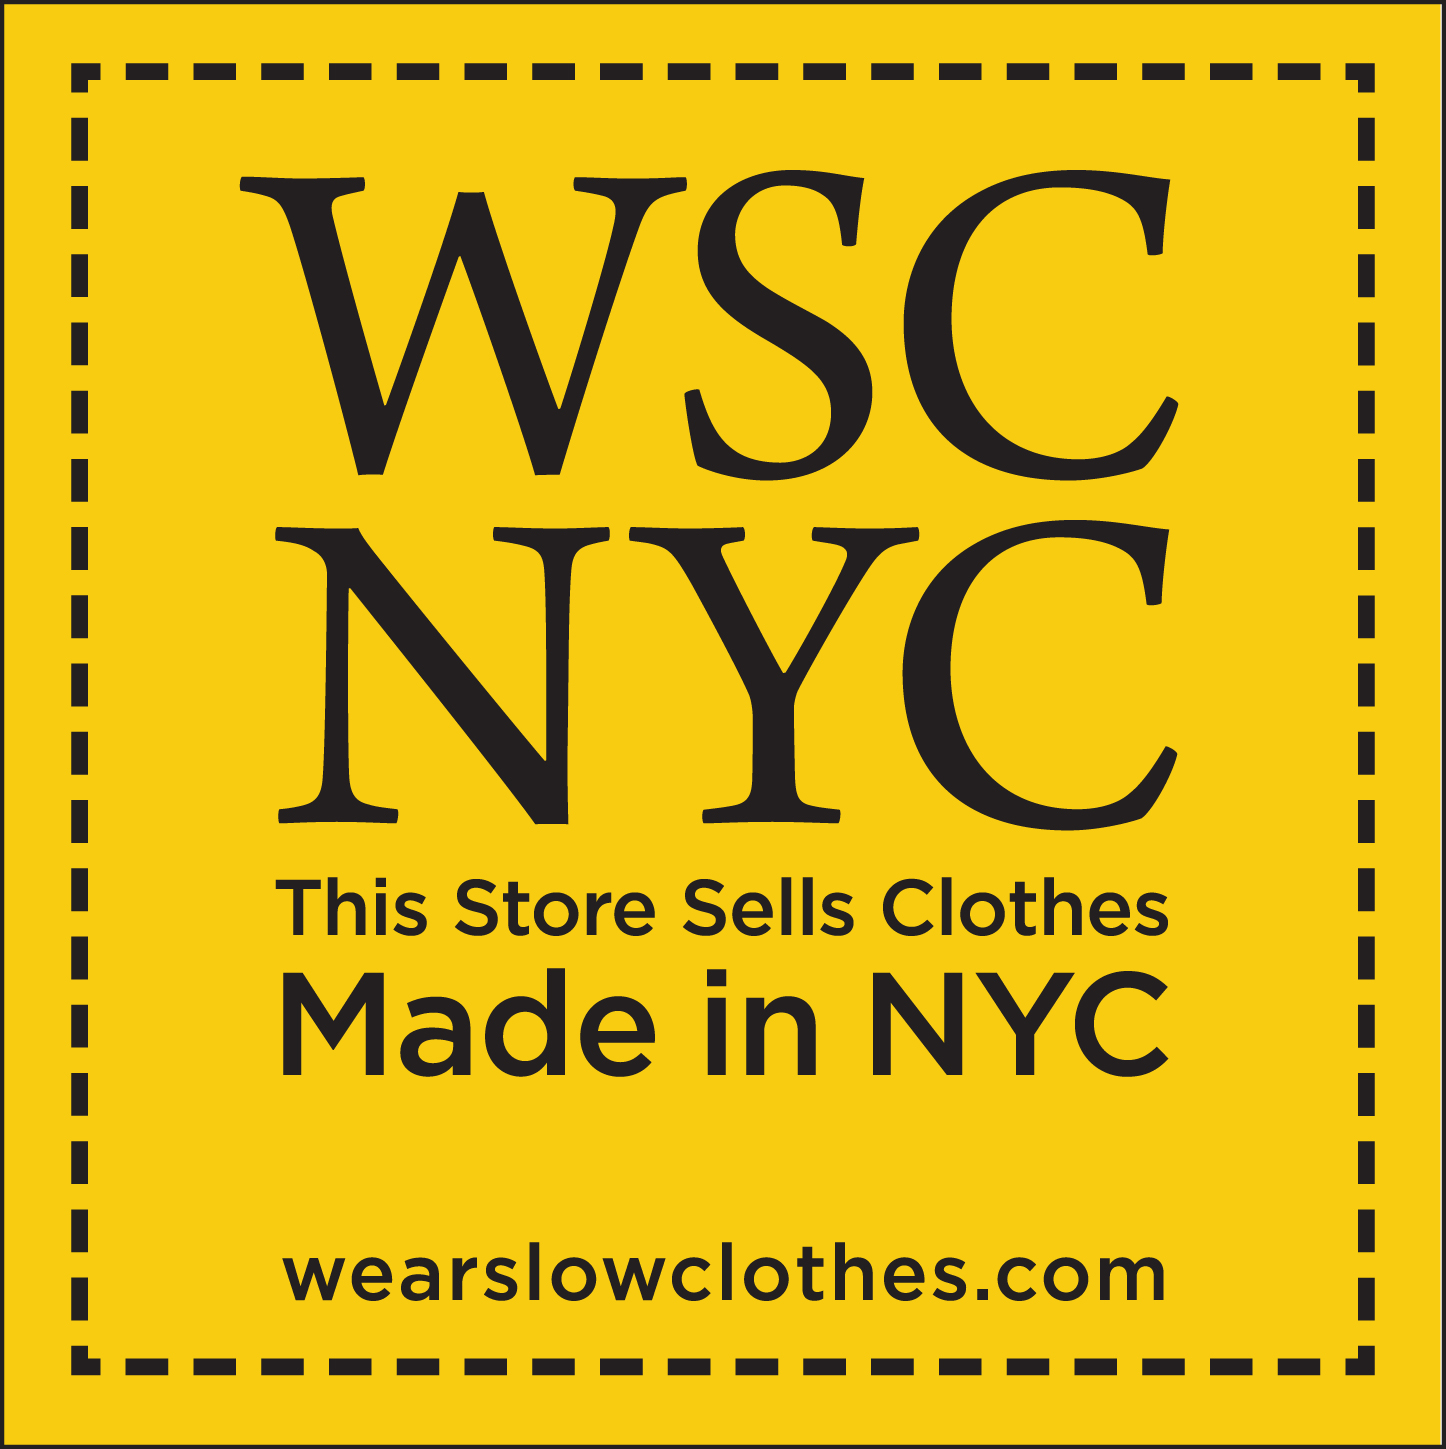 Wear Slow Clothes NYC